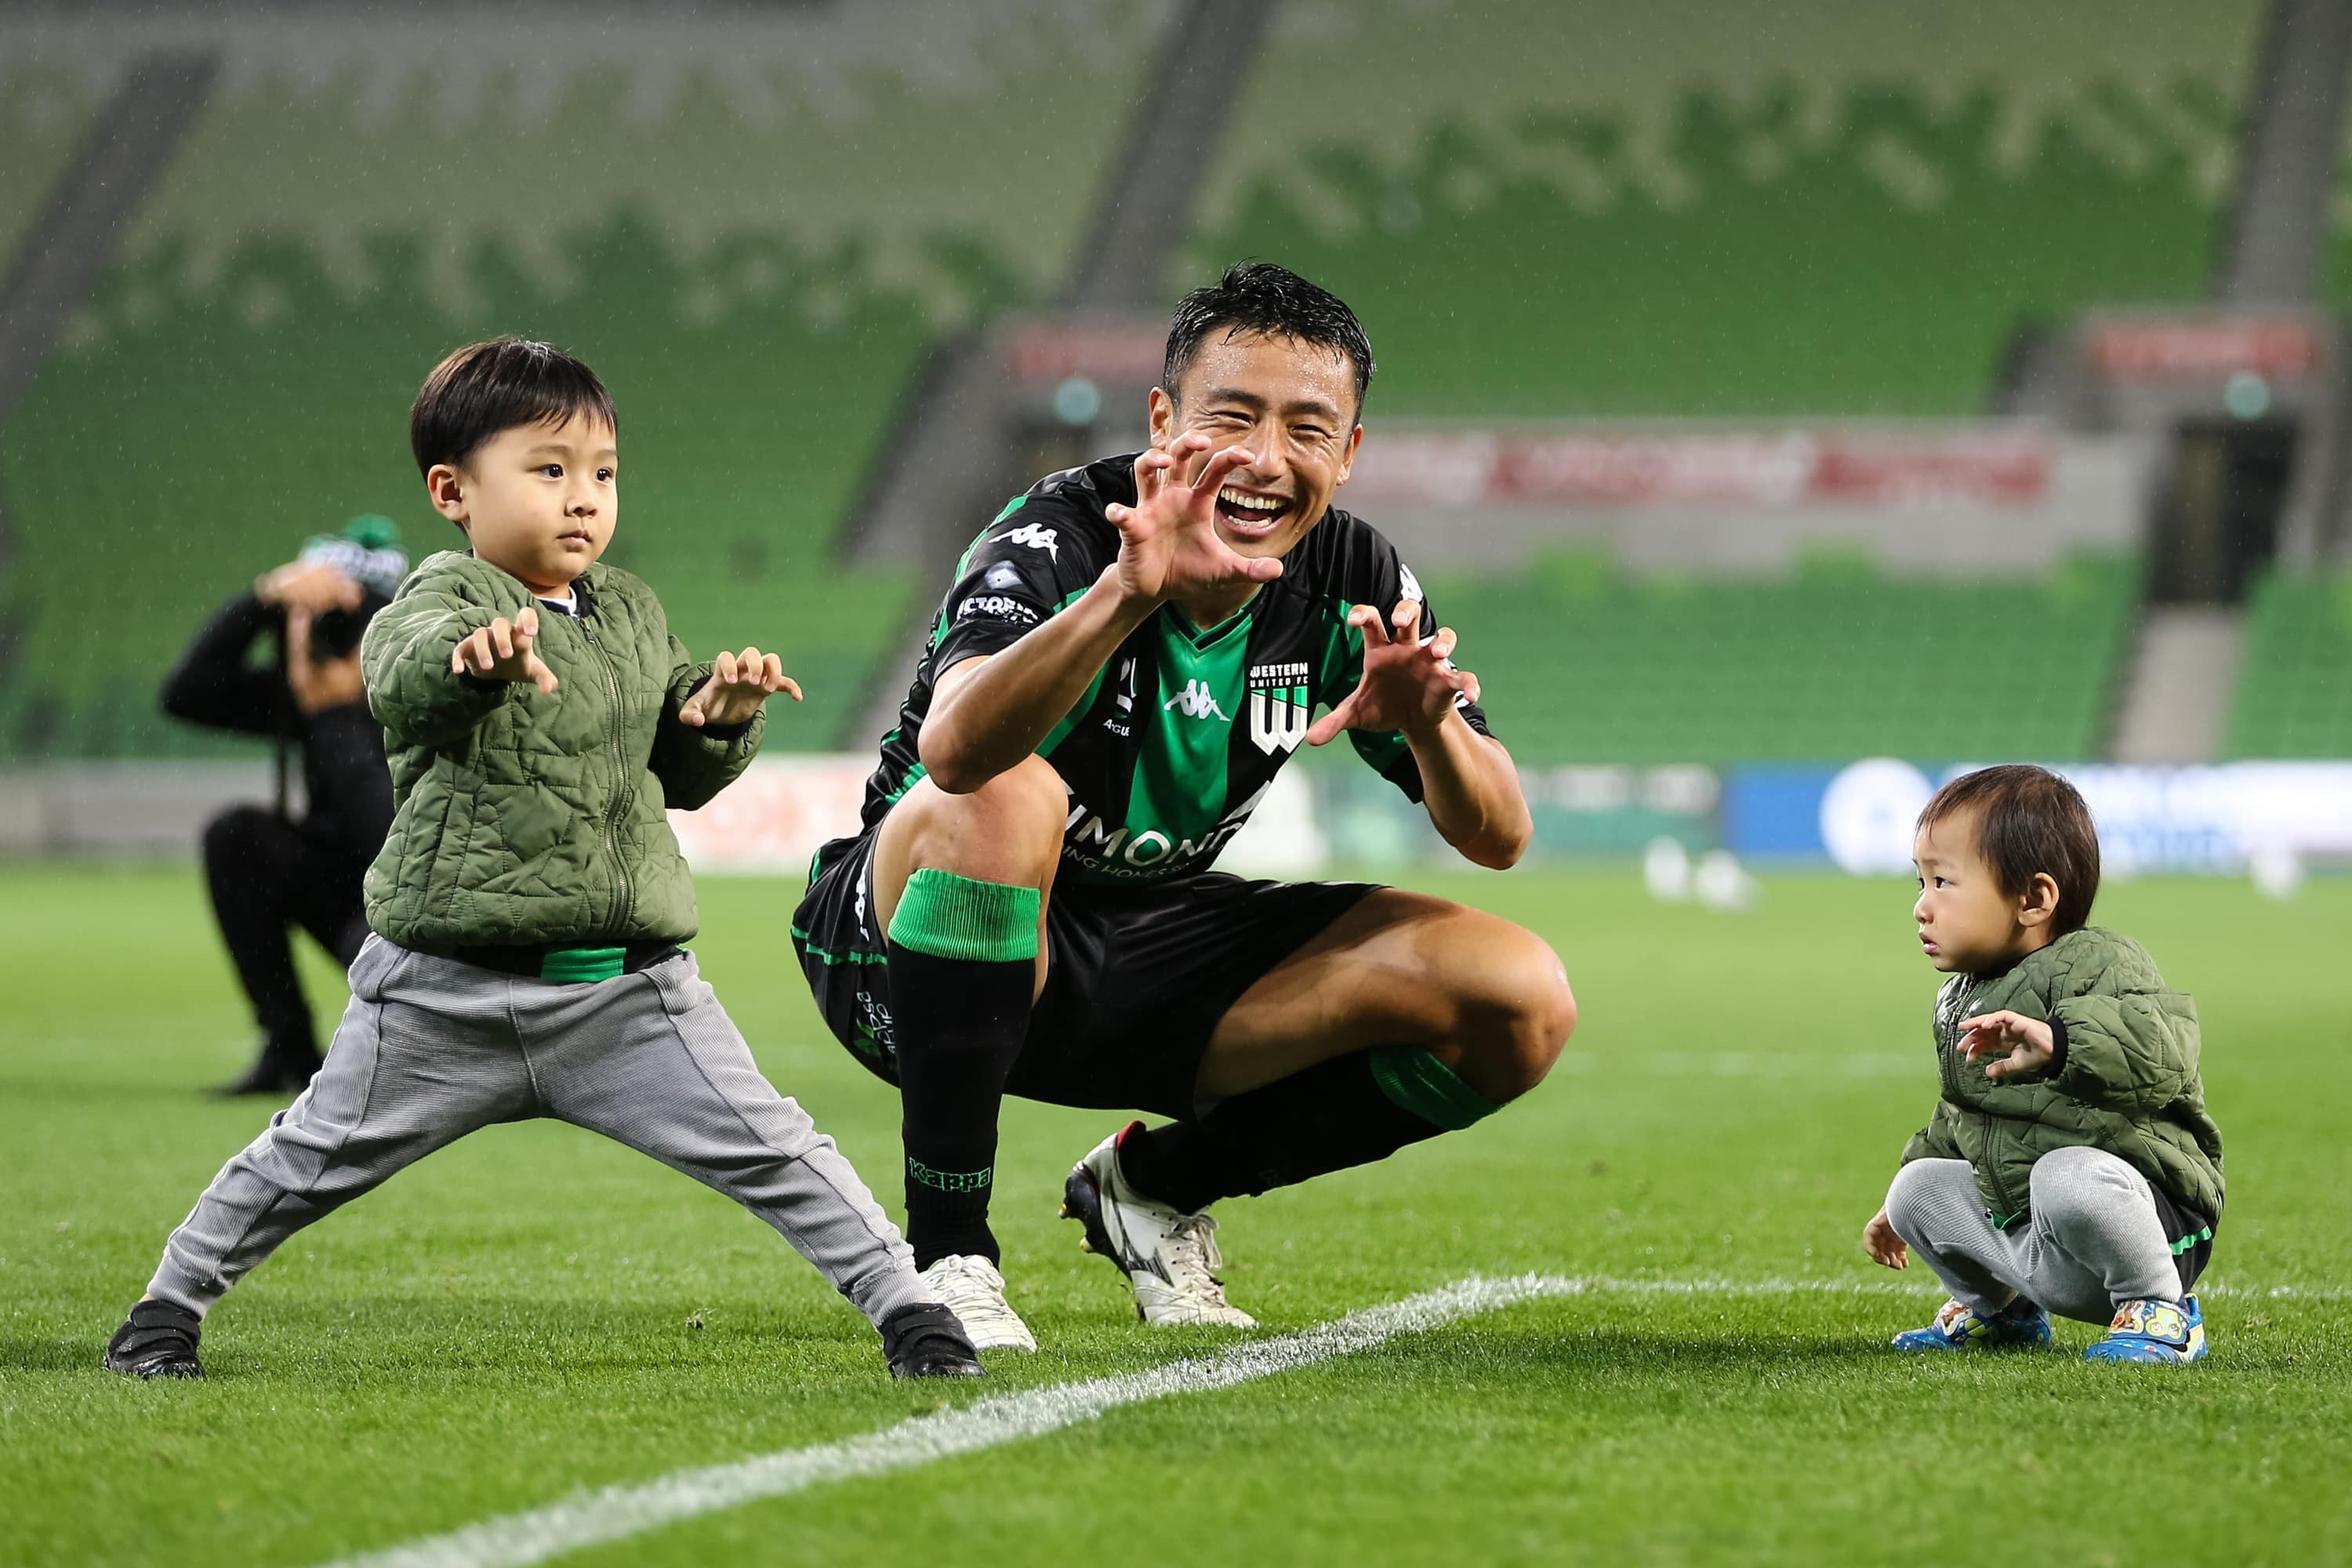 MELBOURNE, AUSTRALIA - APRIL 26: Tomoki Imai of Western United poses with his children during the Hyundai A-League soccer match between Western United FC and Newcastle Jets on April, 26, 2021 at AAMI Park in Melbourne, Australia. (Photo by Speed Media/Icon Sportswire)